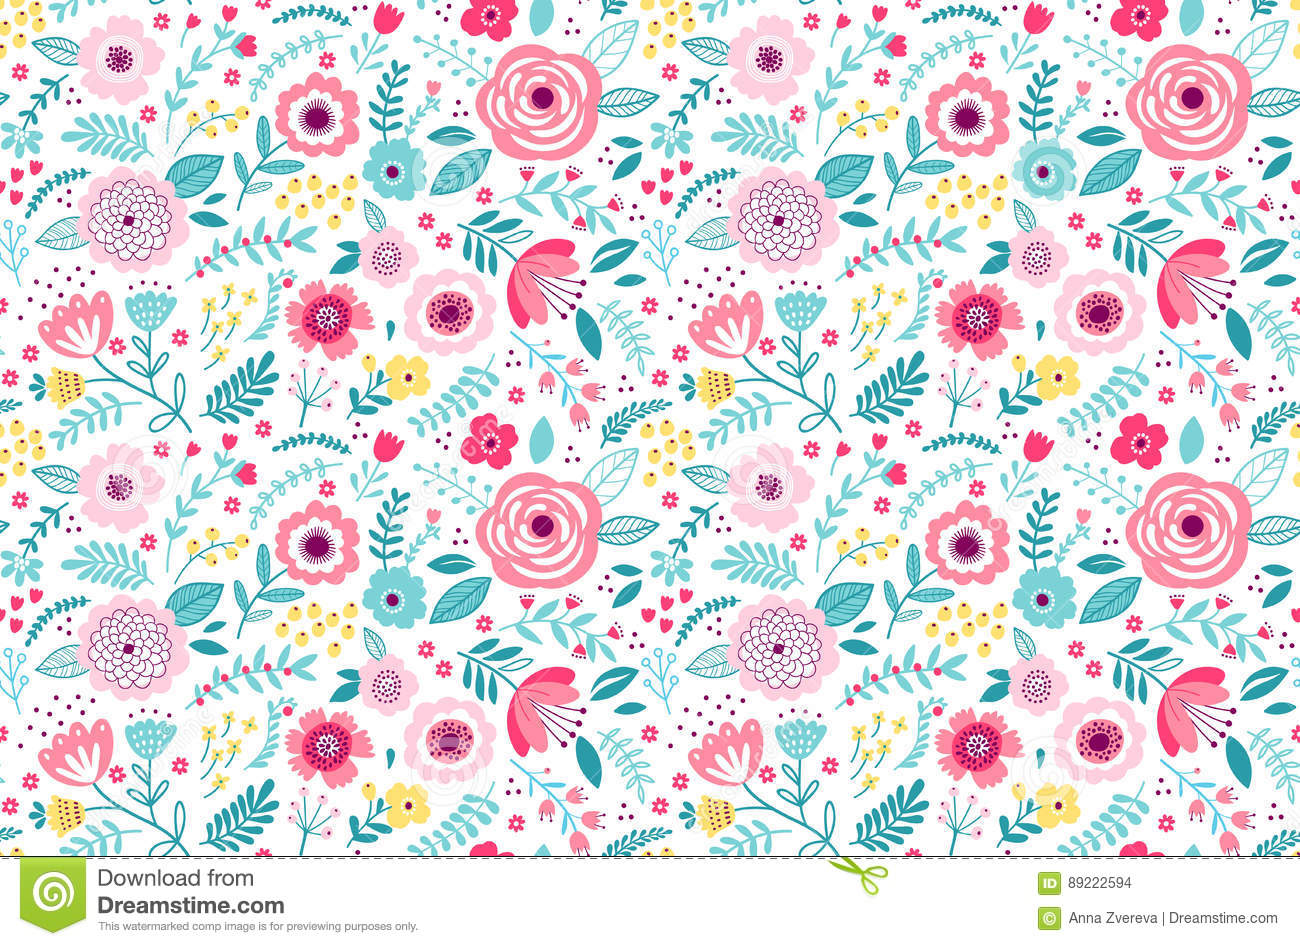 Cute Floral Pattern Stock Vector Illustration Of Endless 89222594